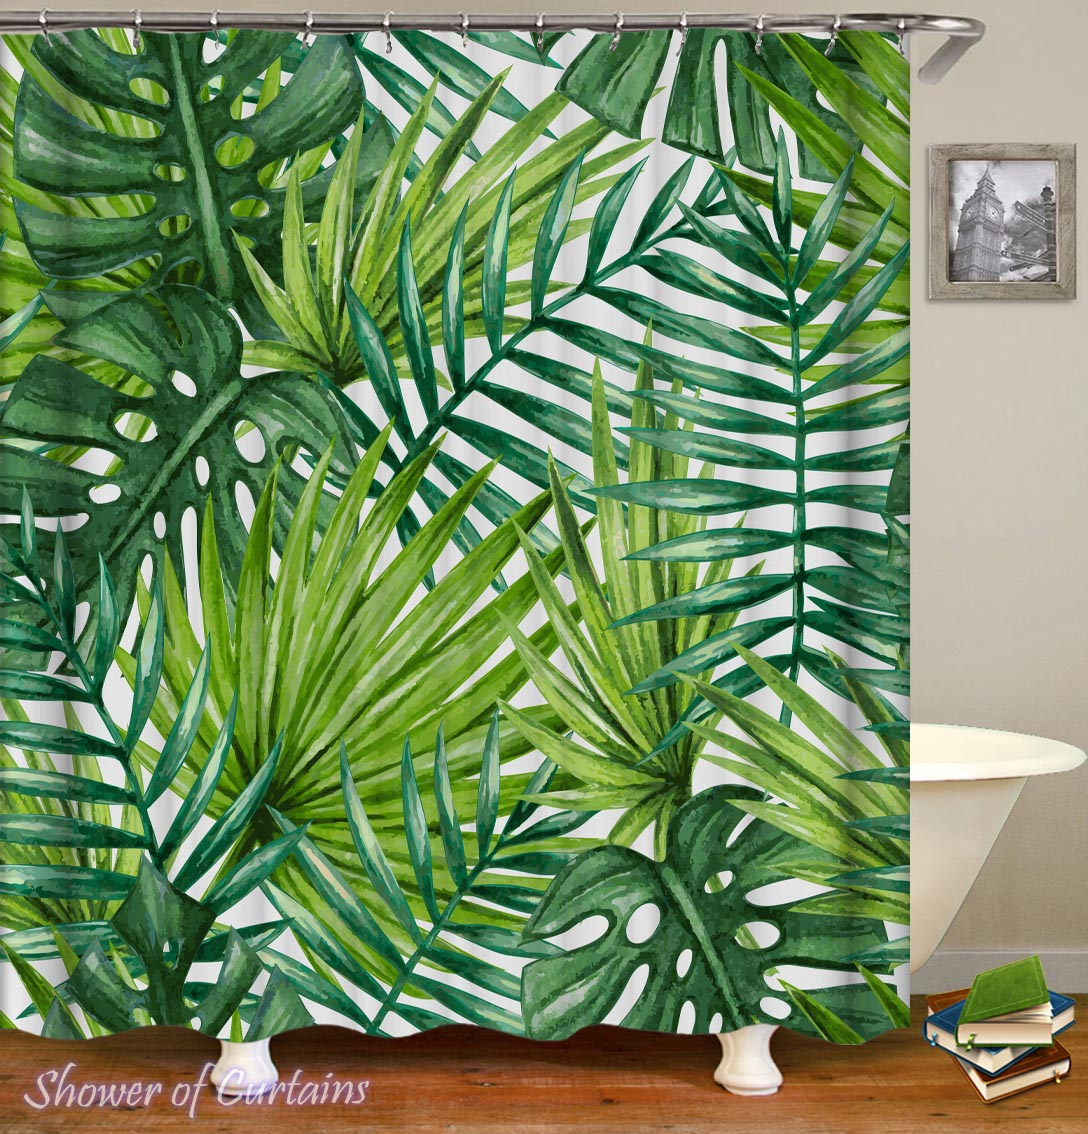 Shower Curtains Of Palm Tree Leaves Shower Of Curtains